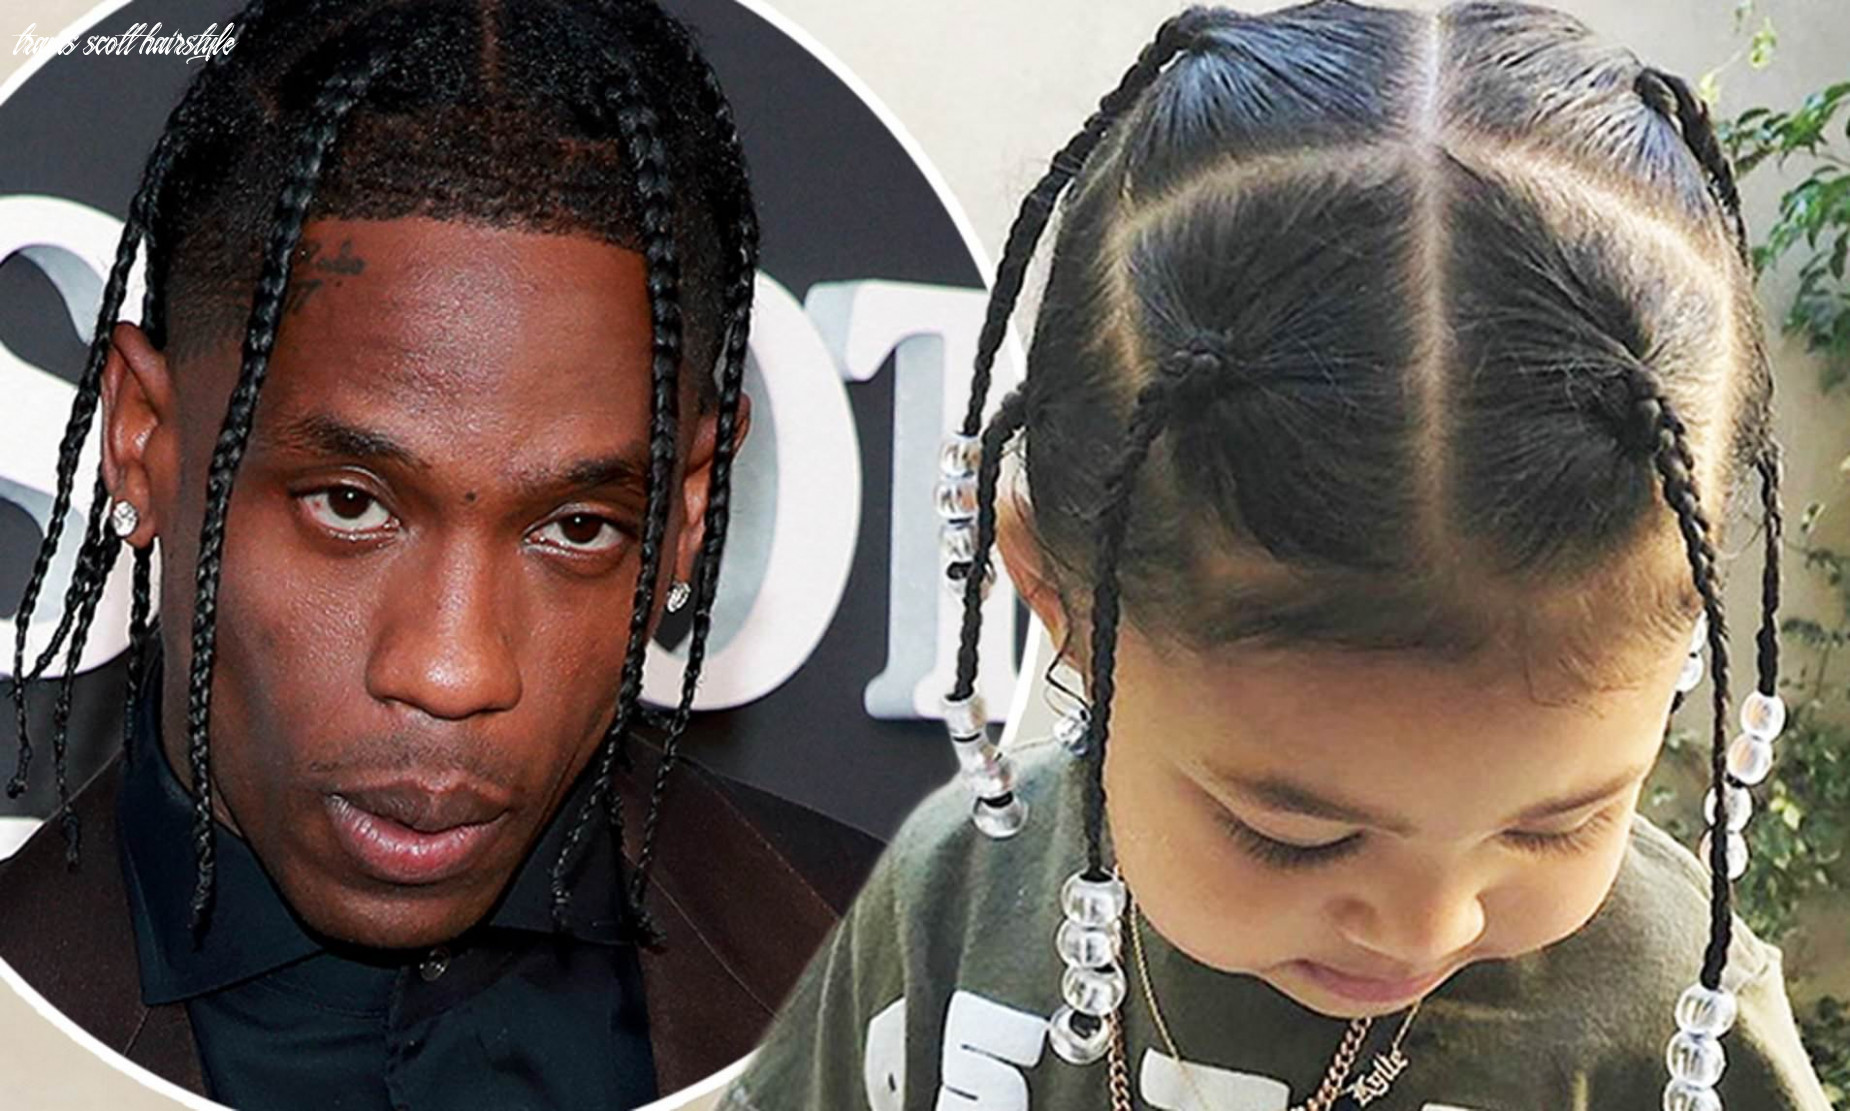 Travis scott gushes over daughter and shares photos of storimi